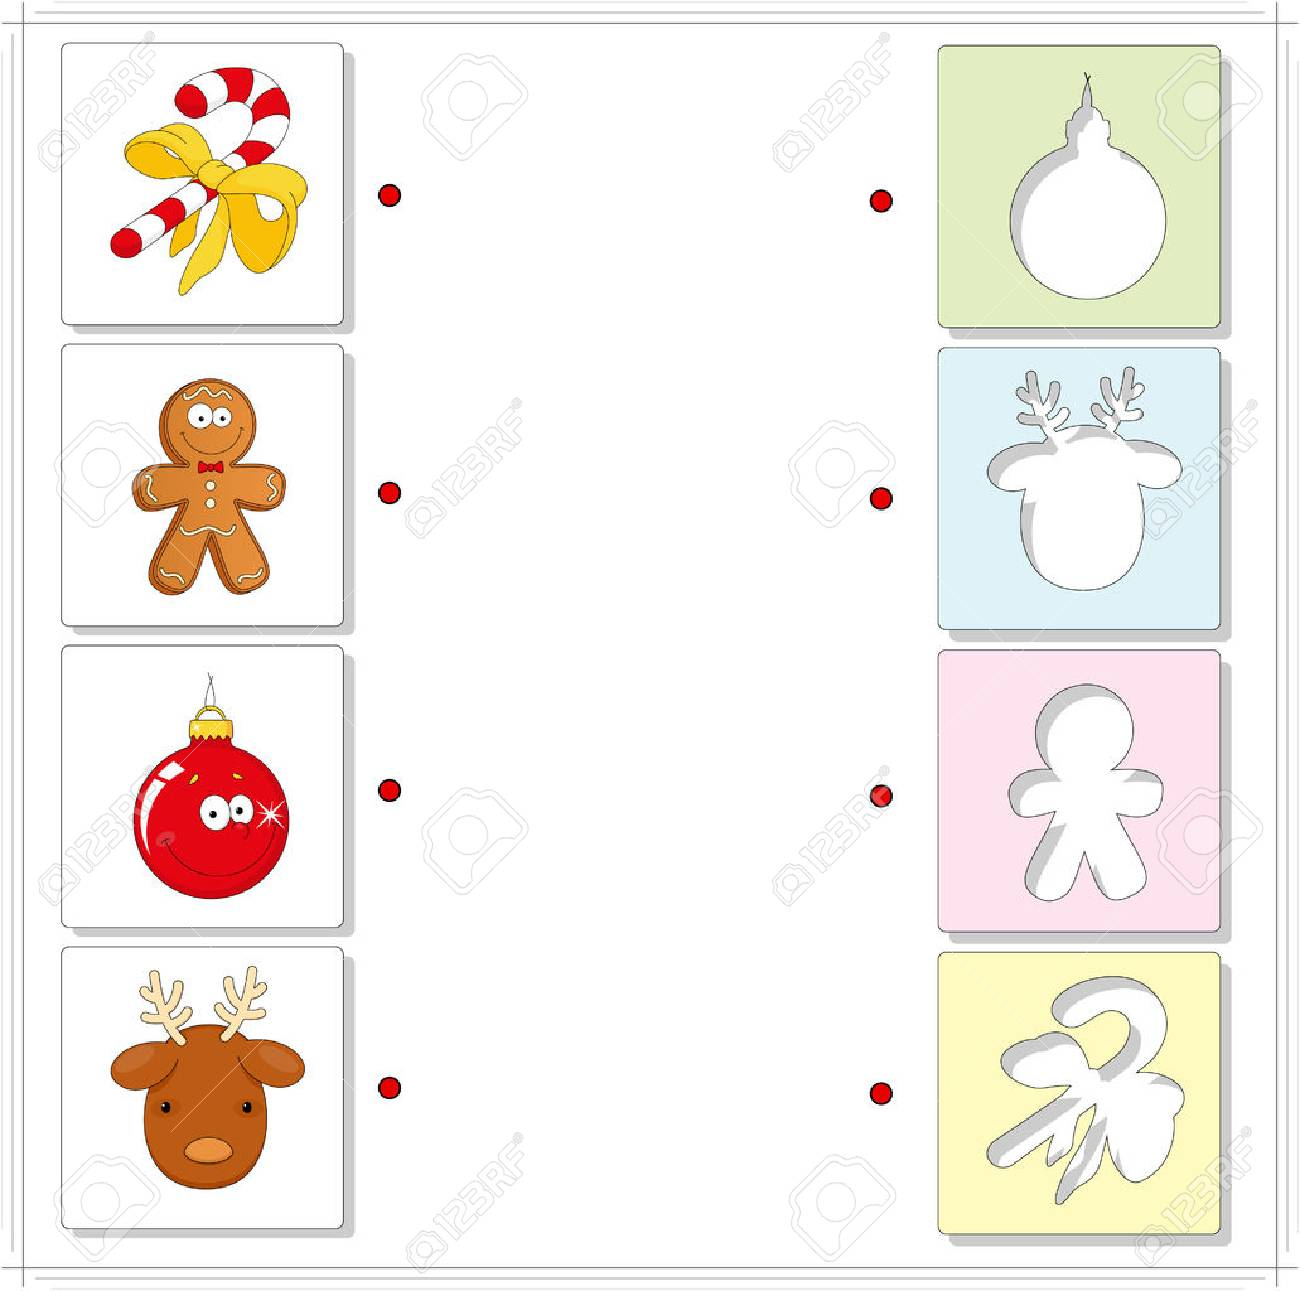 christmas reindeer candy cane gingerbread man and ball educational game for kids